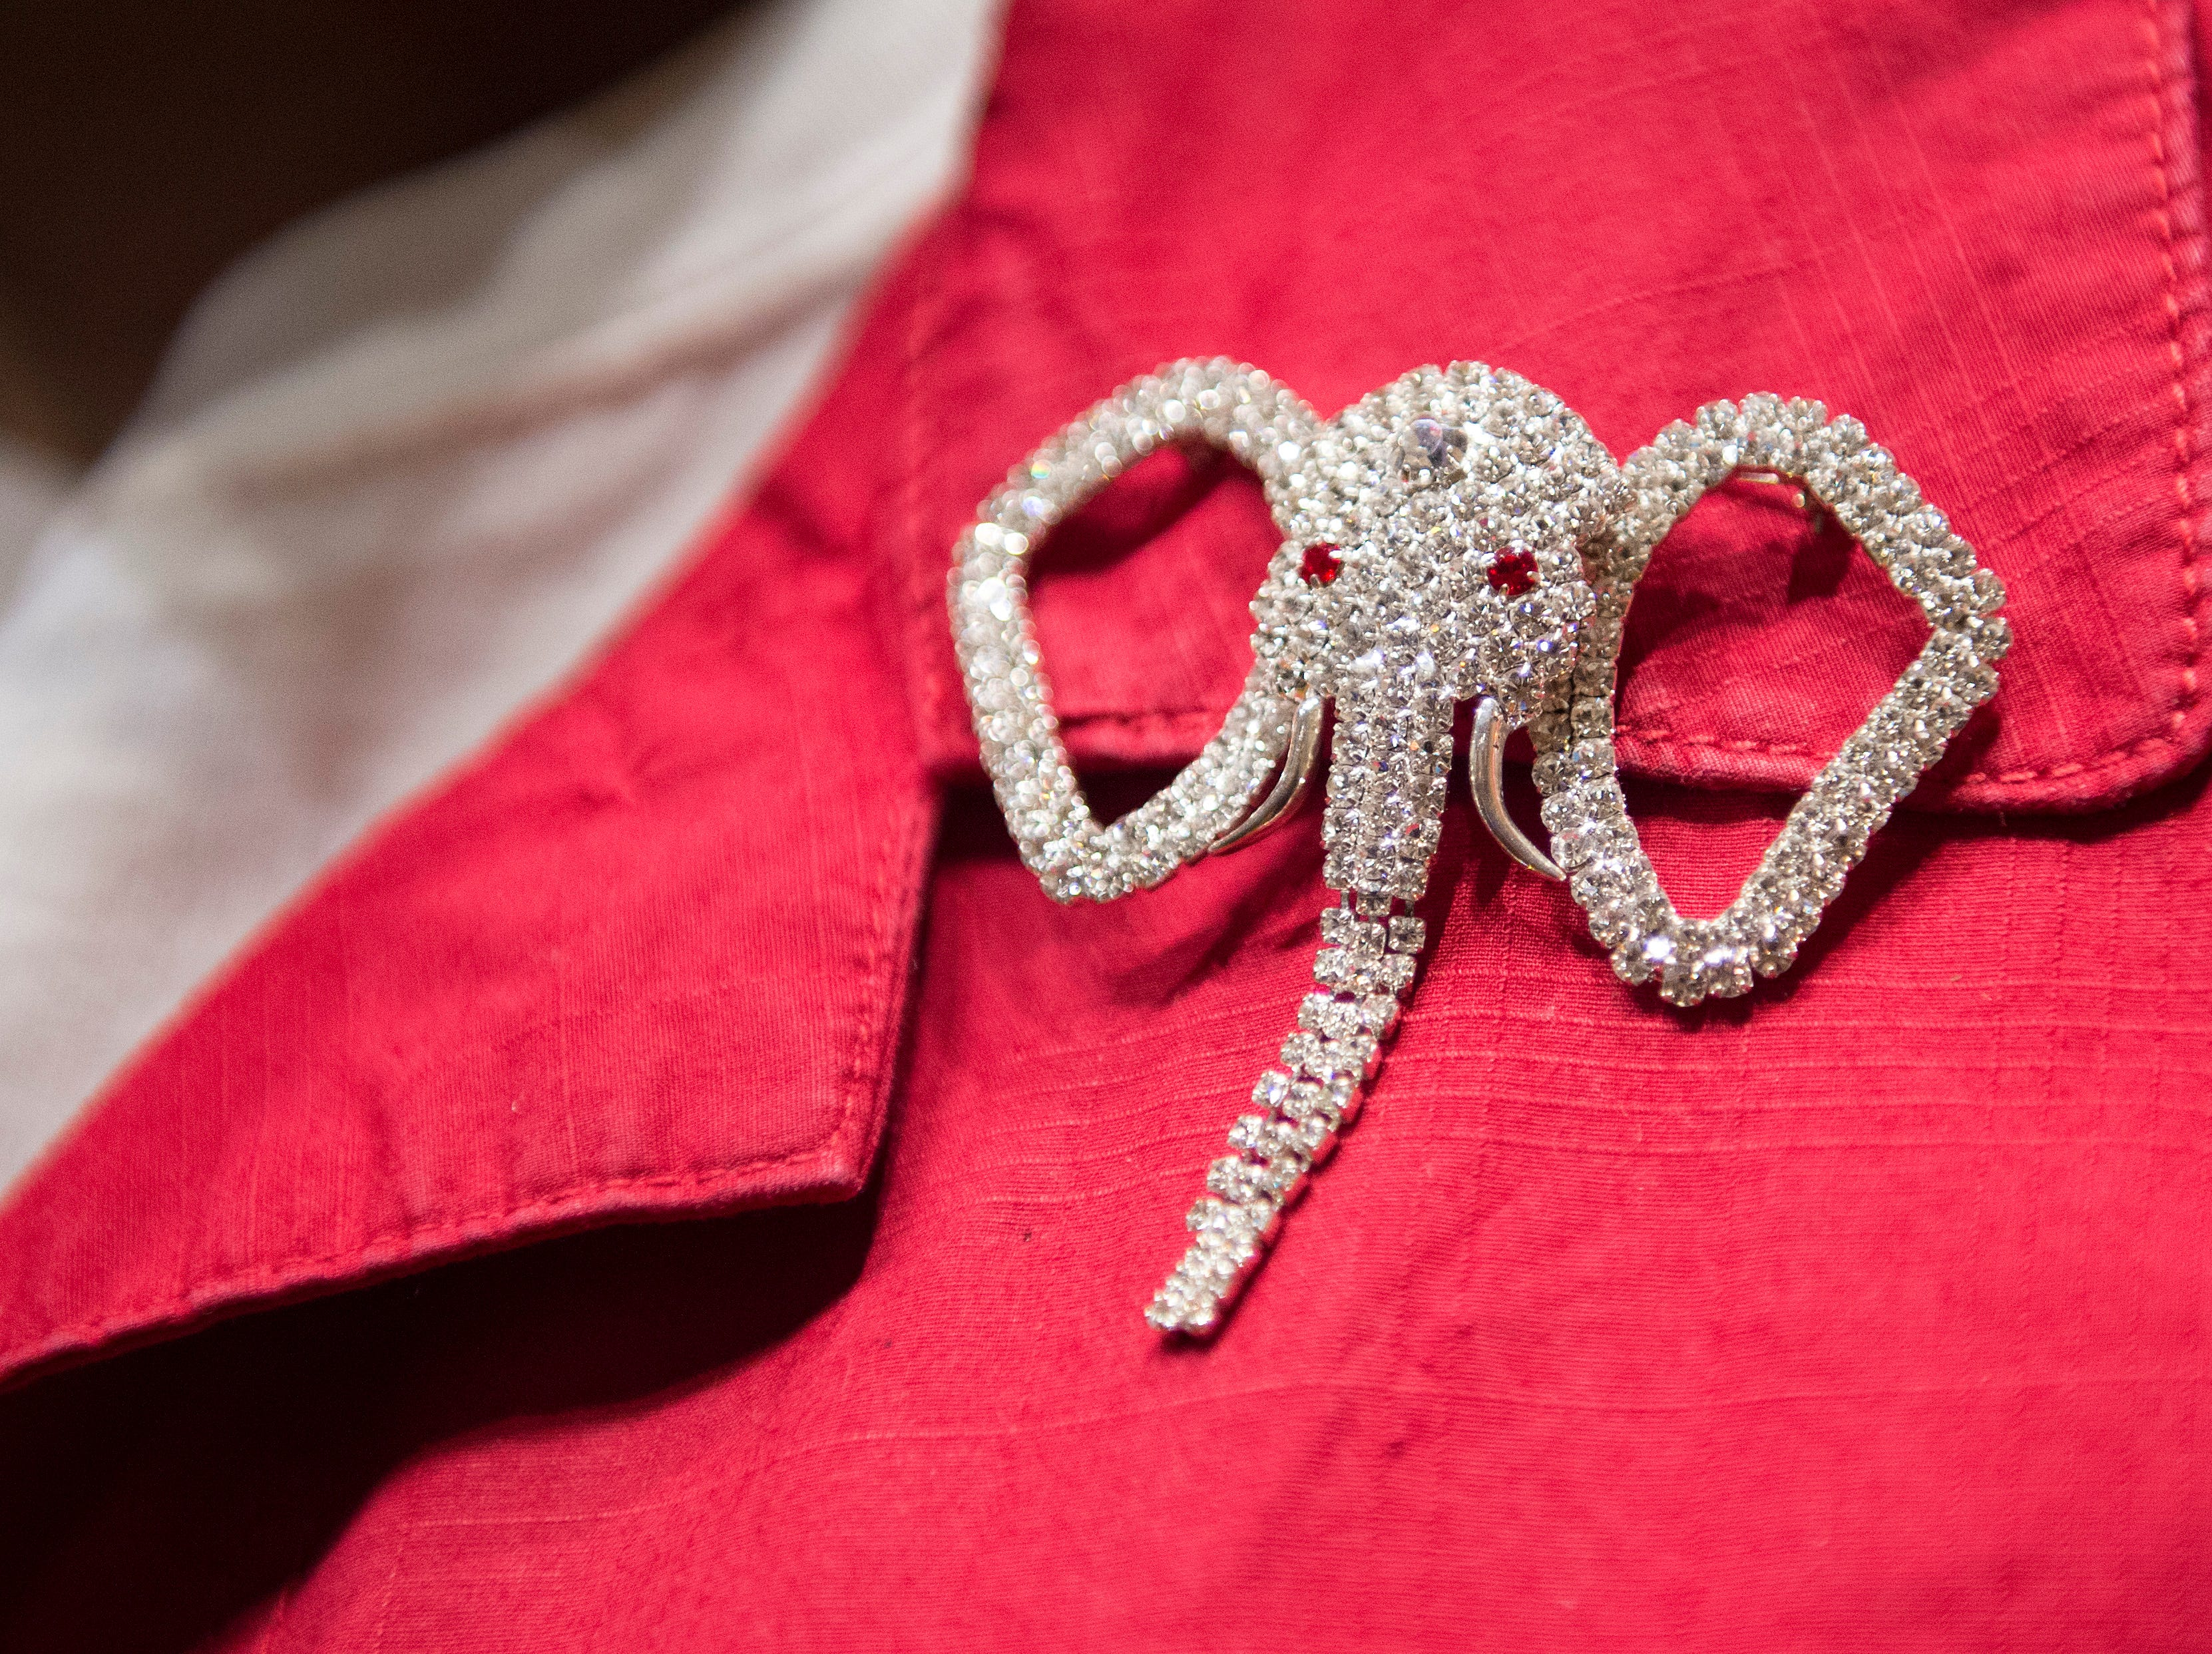 A woman wears an elephant broche during a Colorado GOP watch party at the Denver Marriott South at Park Meadows in Lone Tree on Election Day, Tuesday, November 6, 2018.